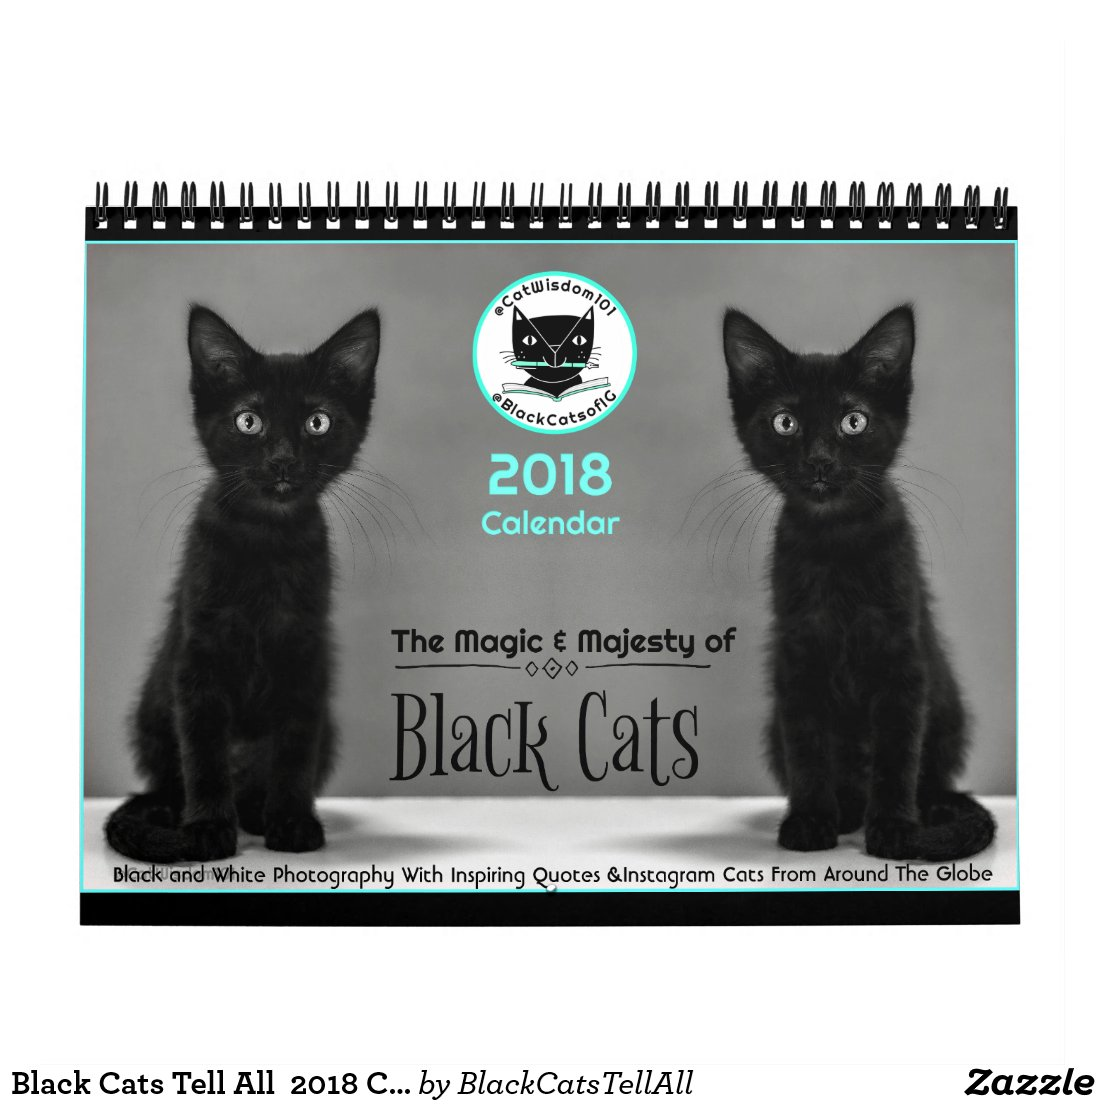 Black Cats Tell All 2018 Calendar